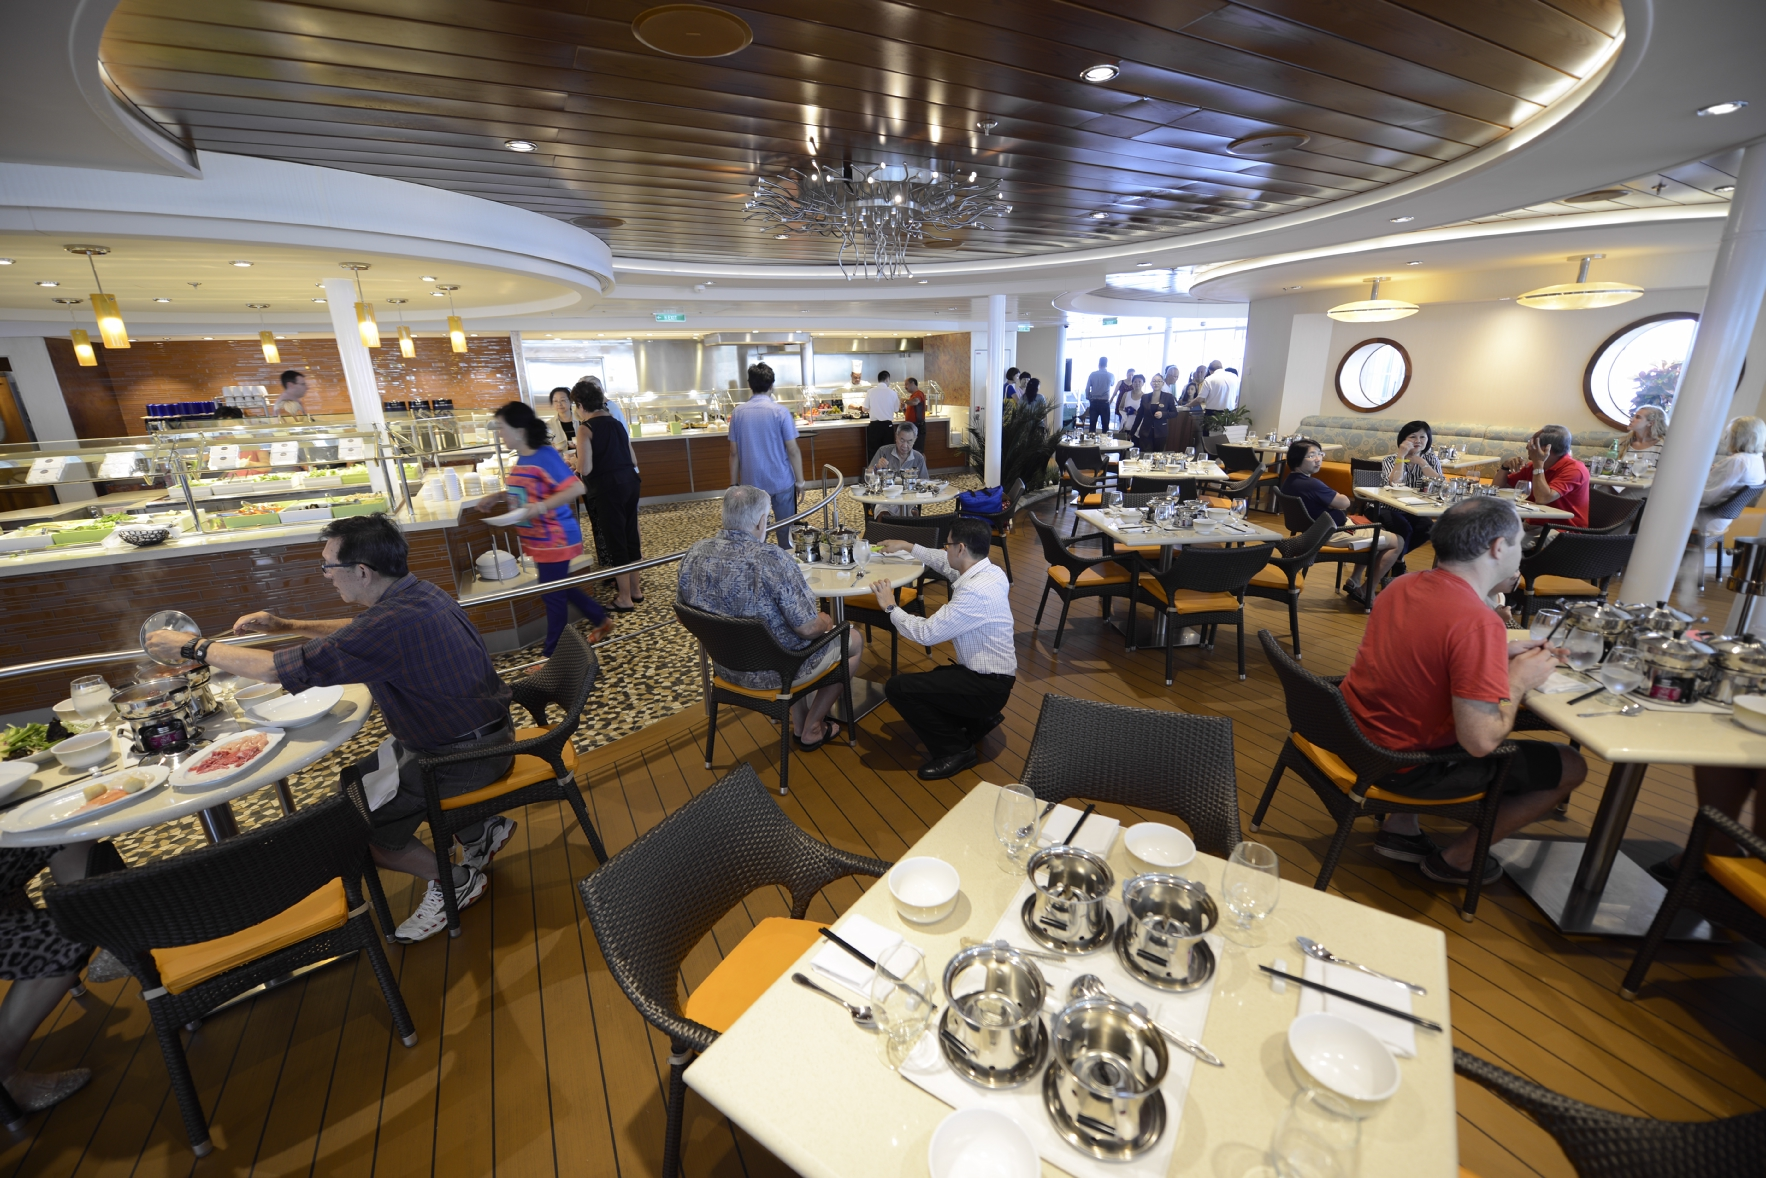 Royal Caribbean International Quantum of the Seas Interior Solarium Bistro 1.jpg